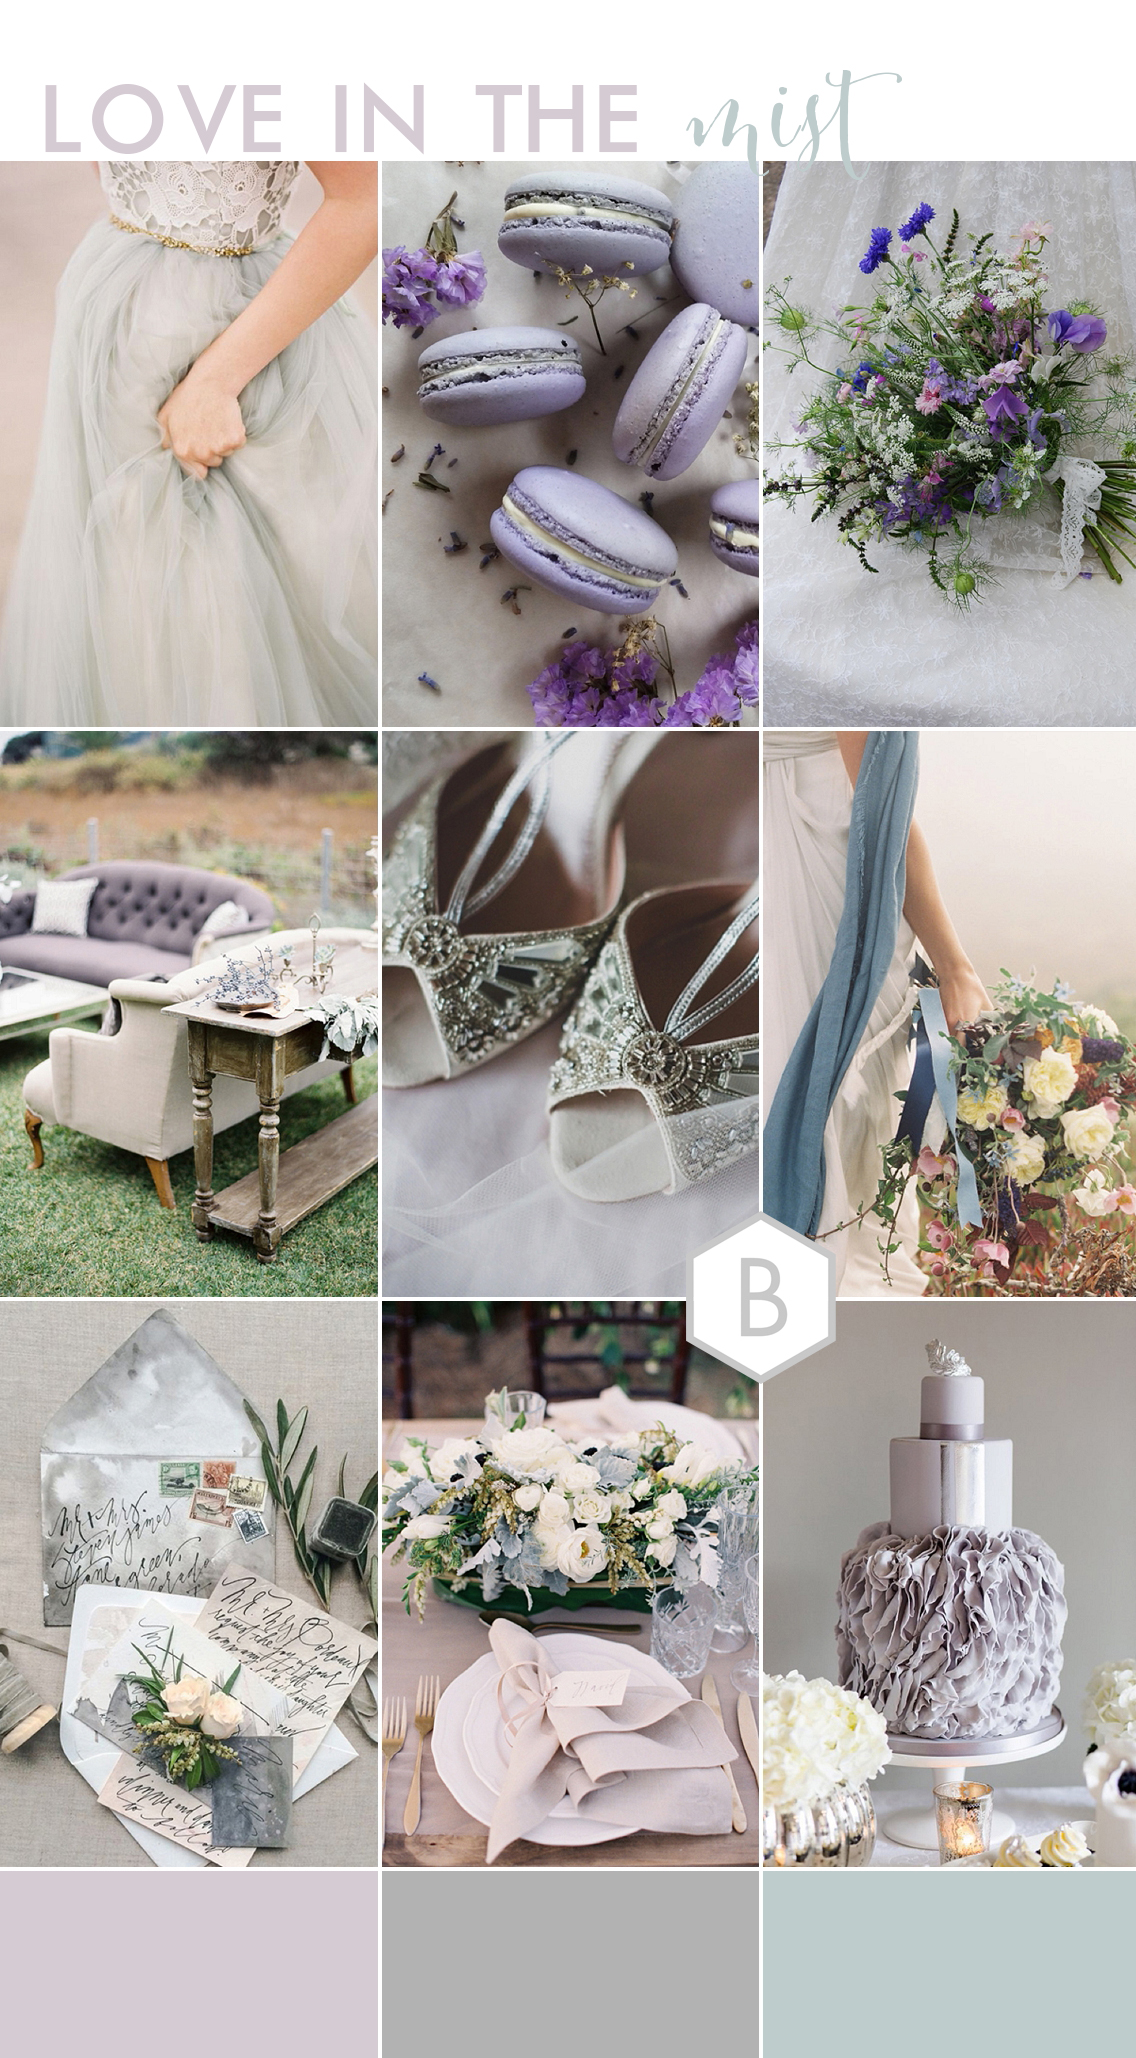 BLOVED Love in the Mist Pale Grey Wedding Inspiration by Goose & Berry